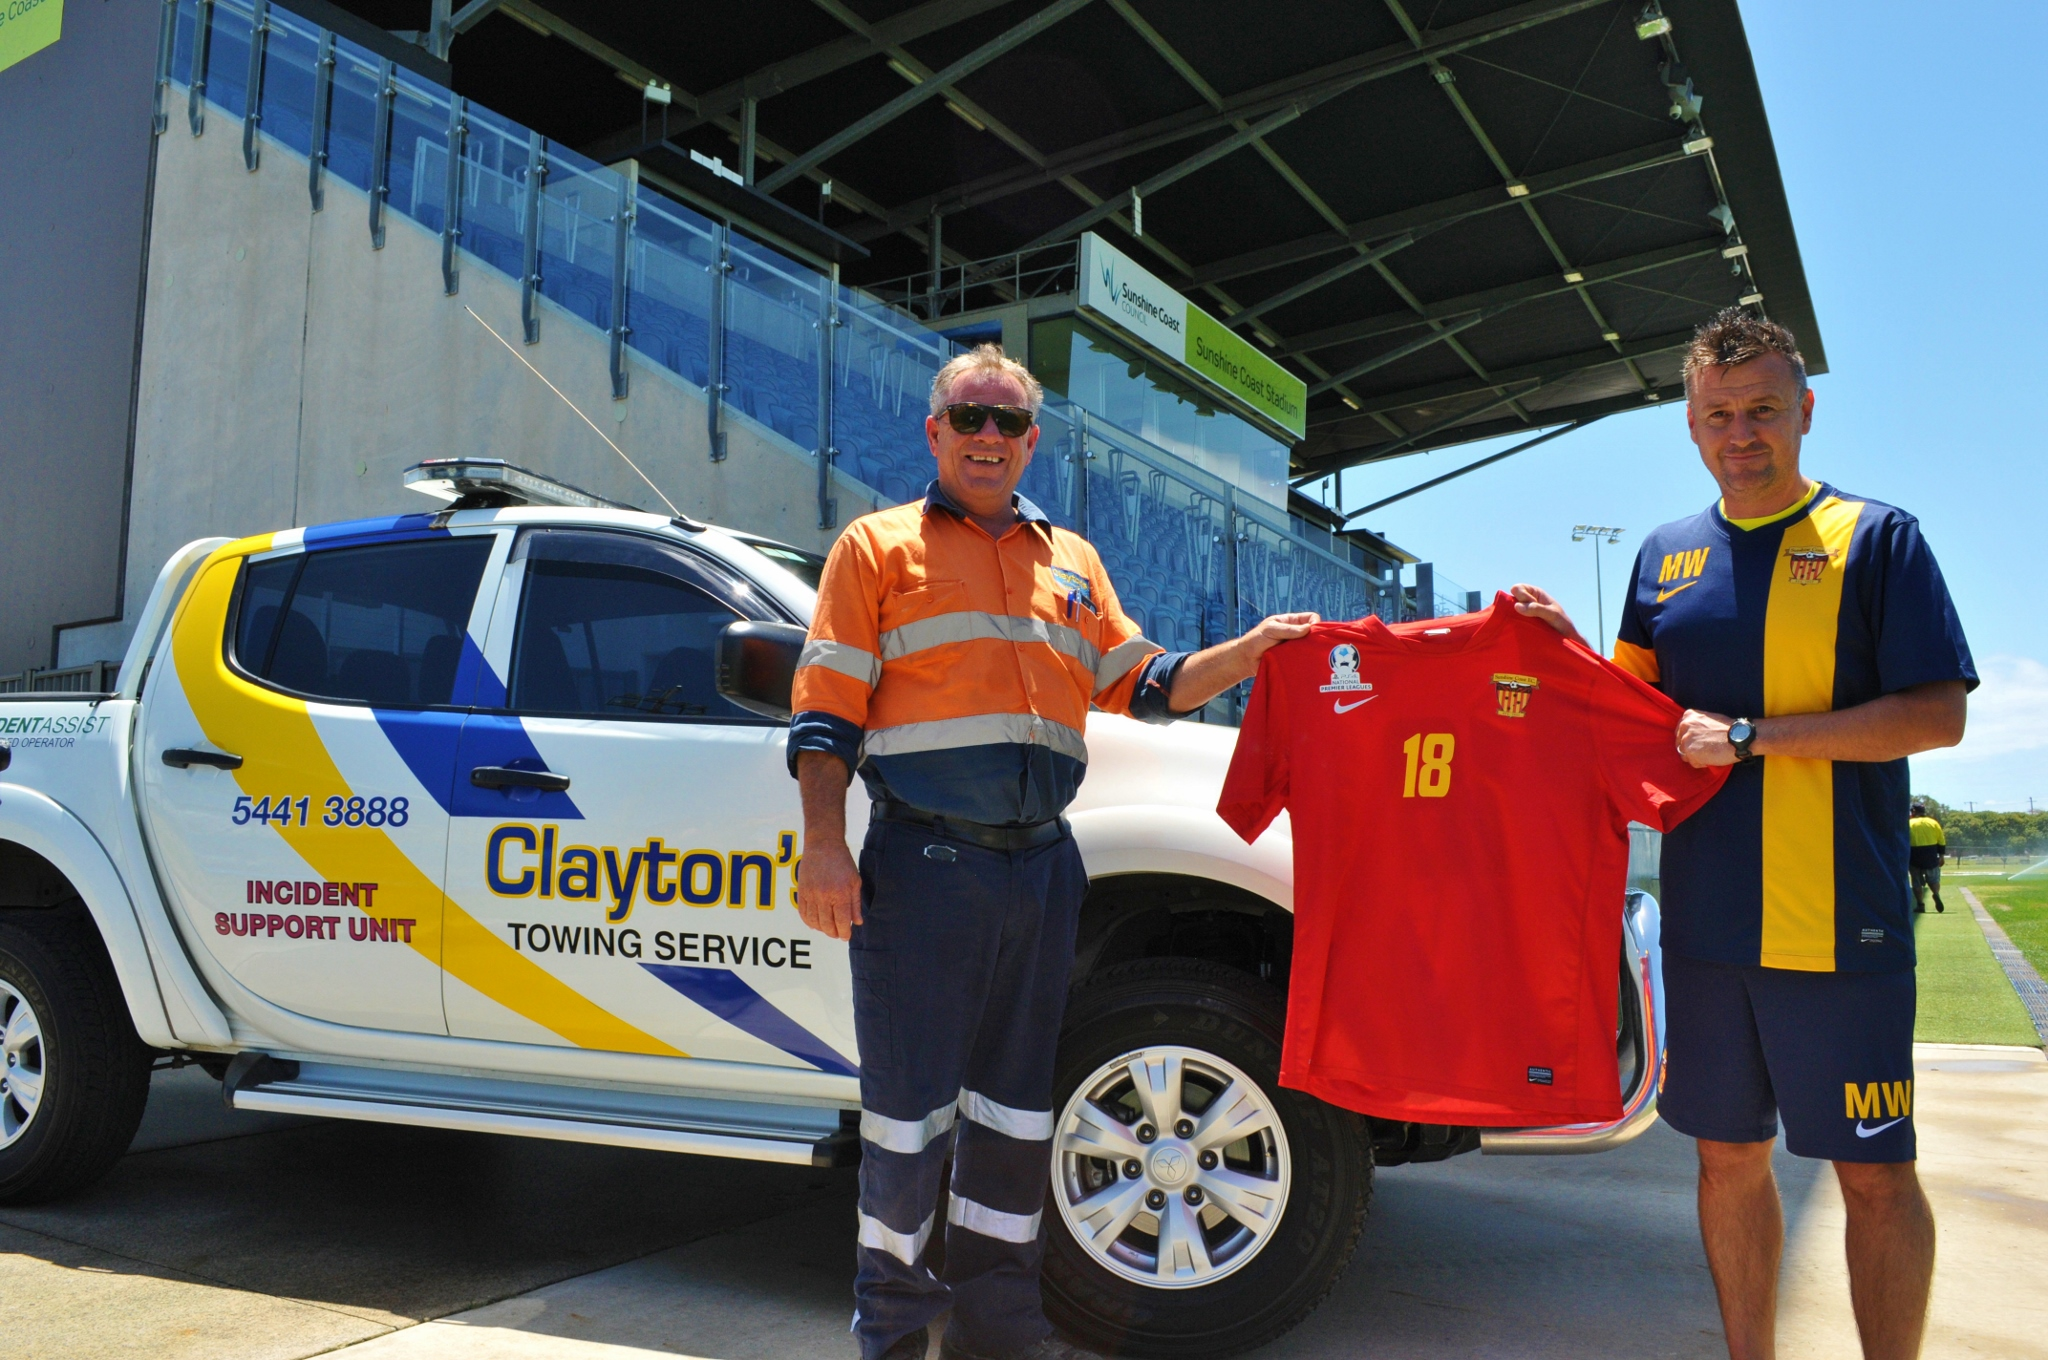 SPONSORSHIP RENEWAL: Clayton's Towing